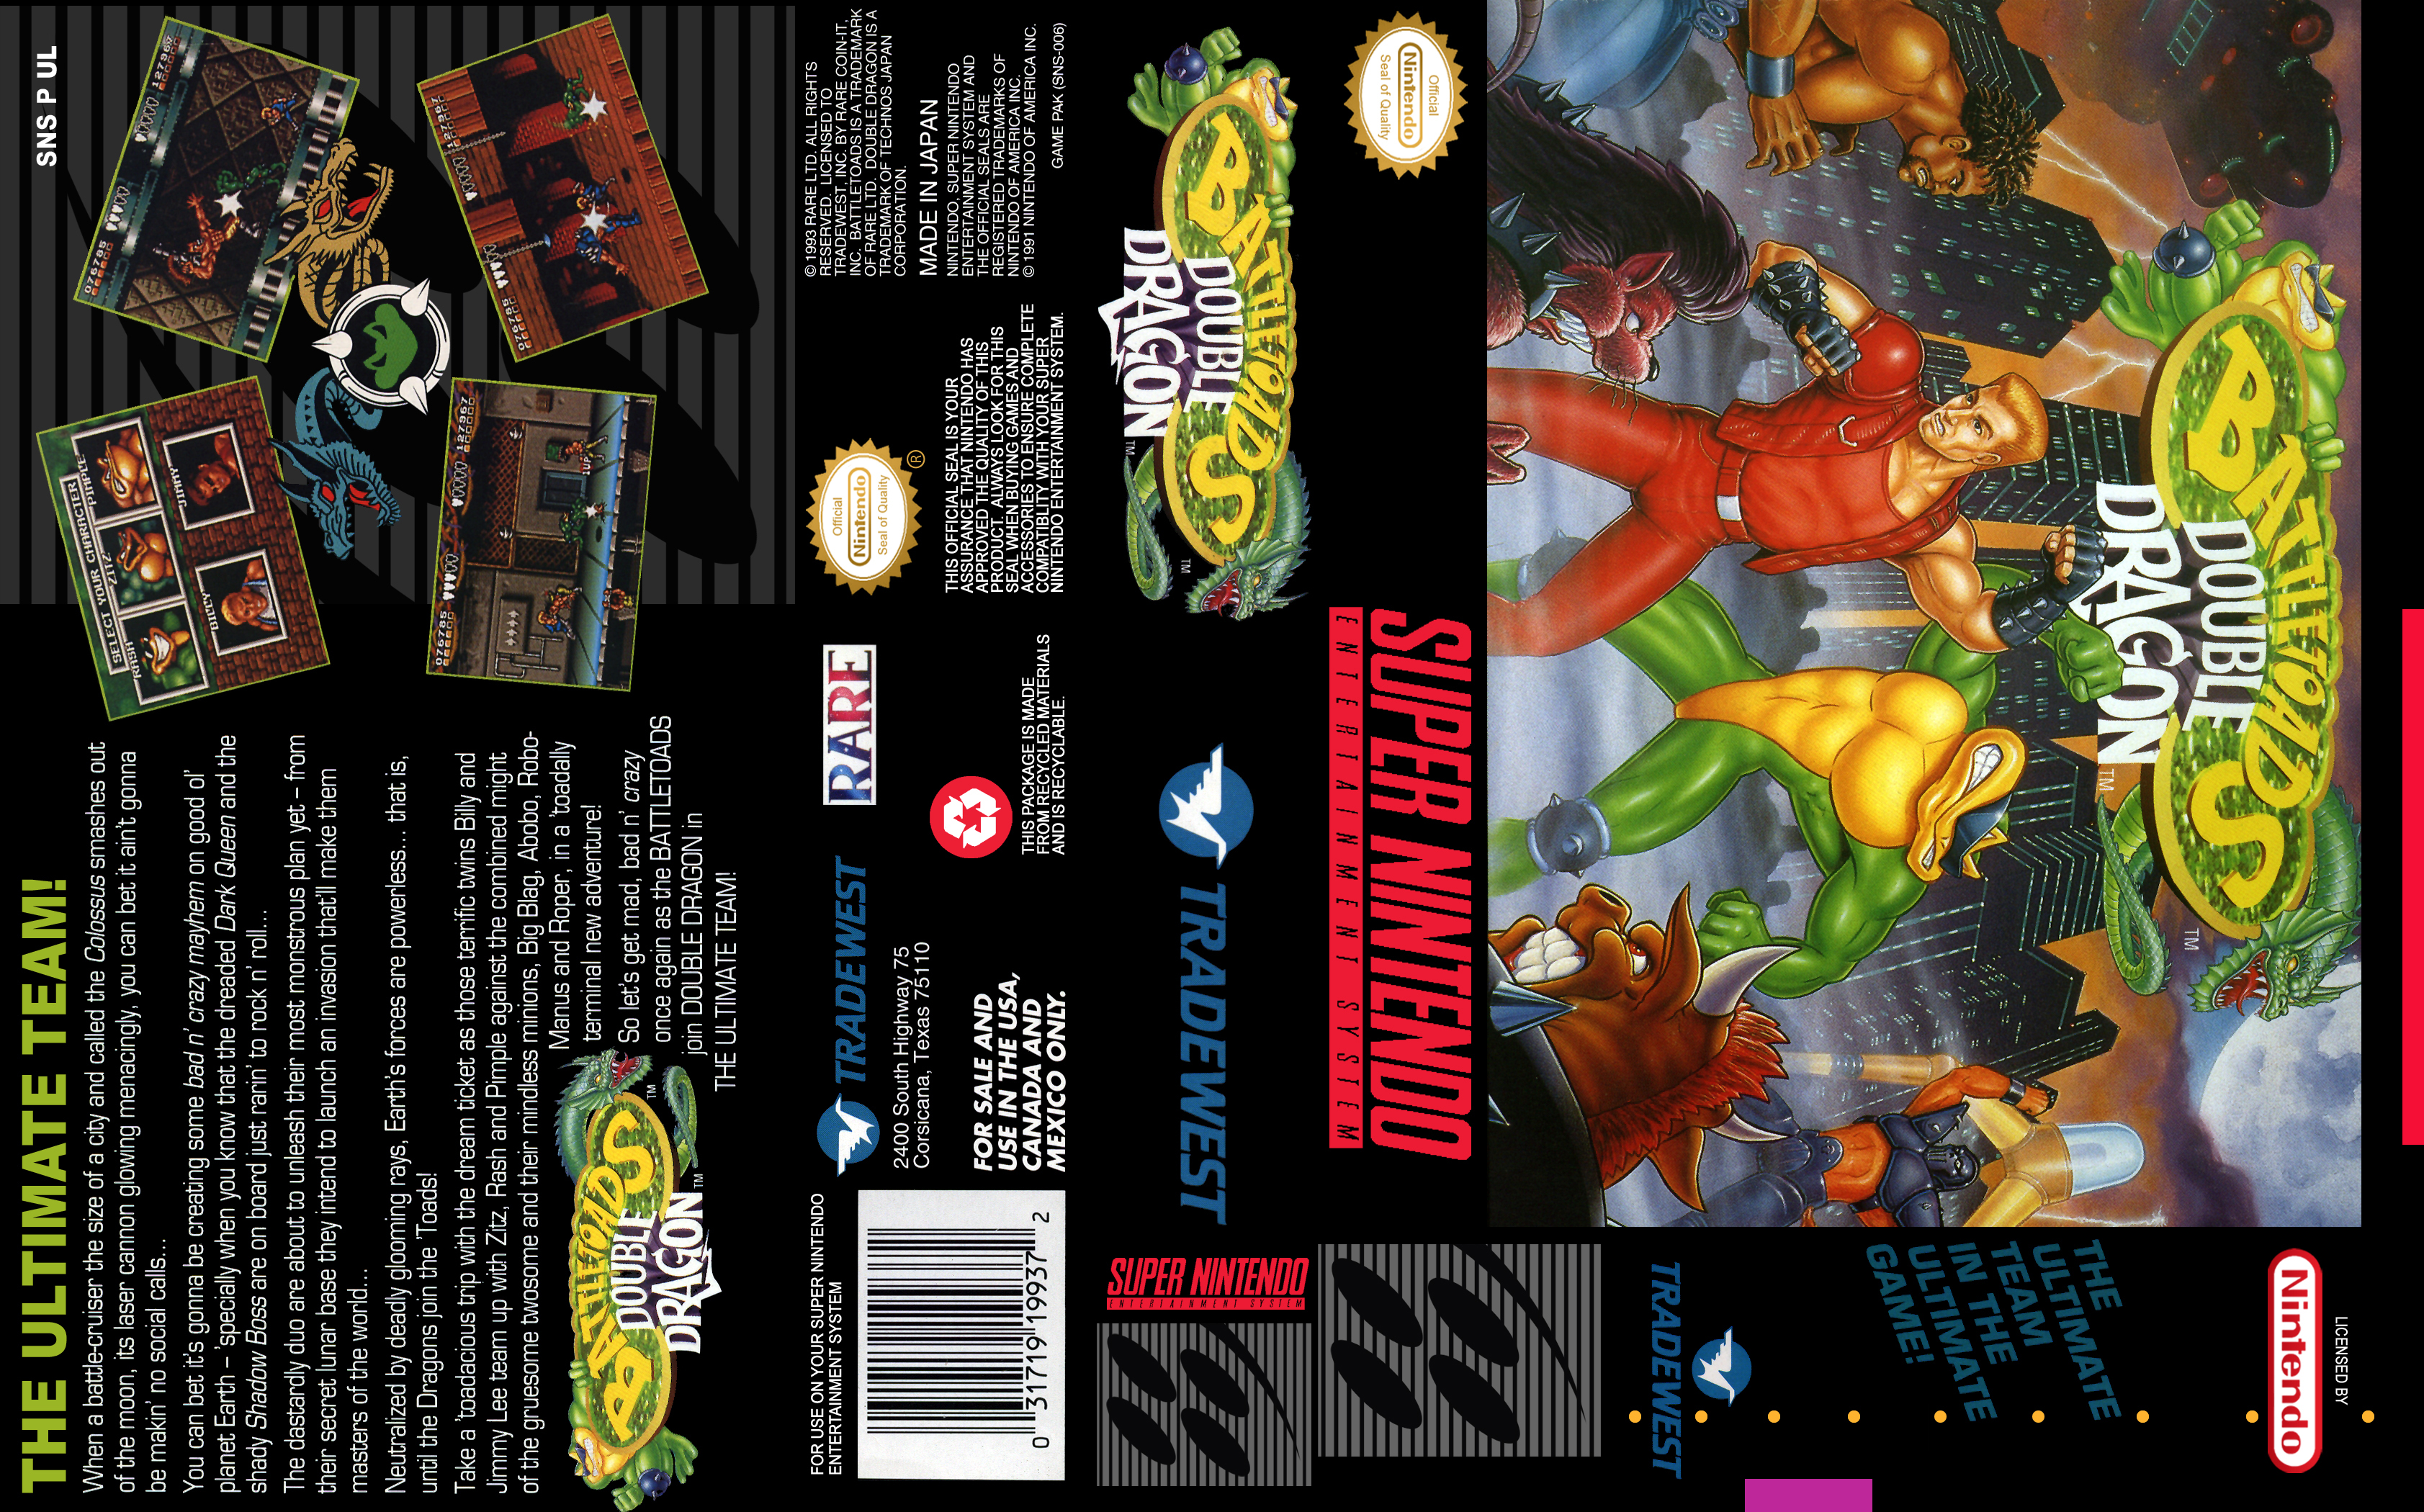 Battletoads Double Dragon Super Nintendo Covers Cover Century Over 500 000 Album Art Covers For Free